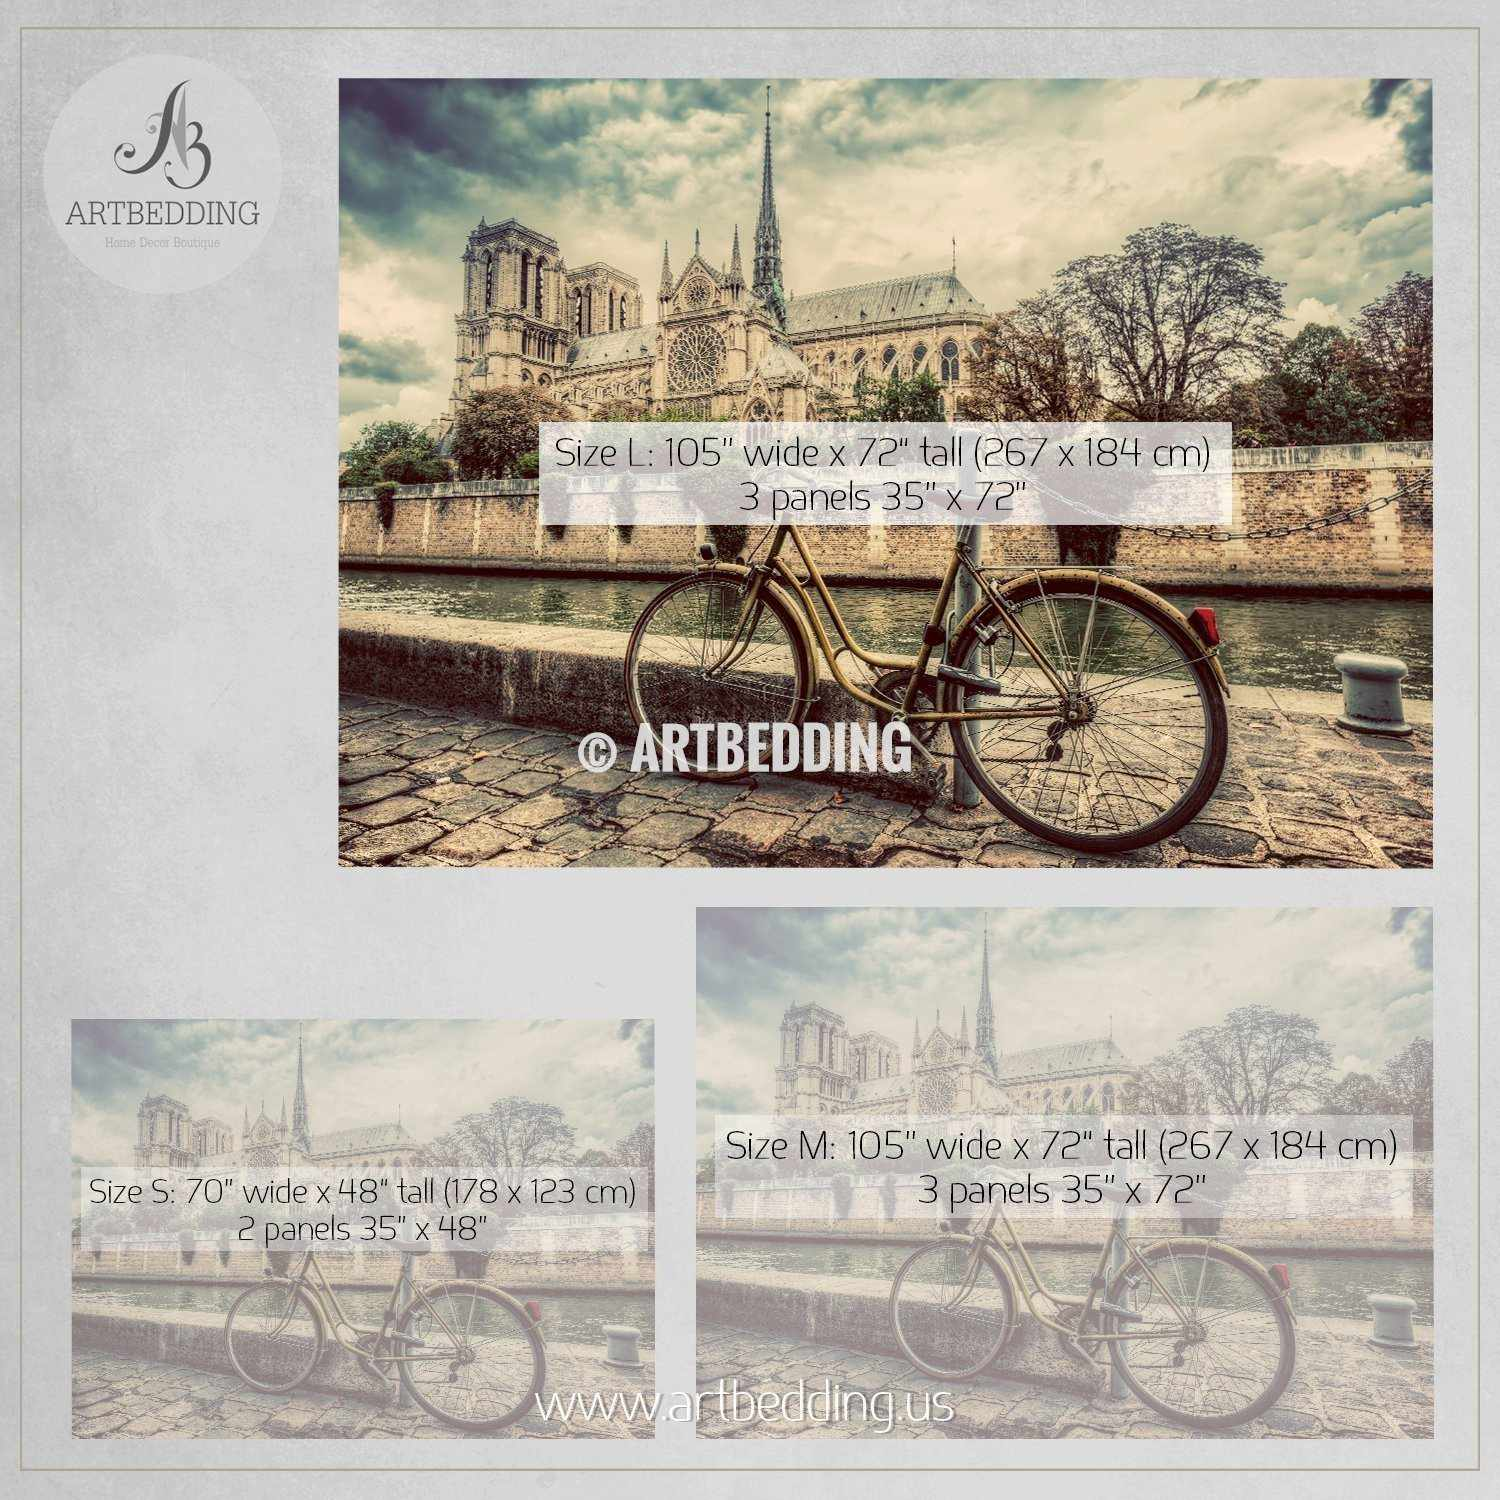 Wall Murals Peel And Stick Self Adhesive Vinyl Hd Print Page 7 Retro Bike  Next To Part 78